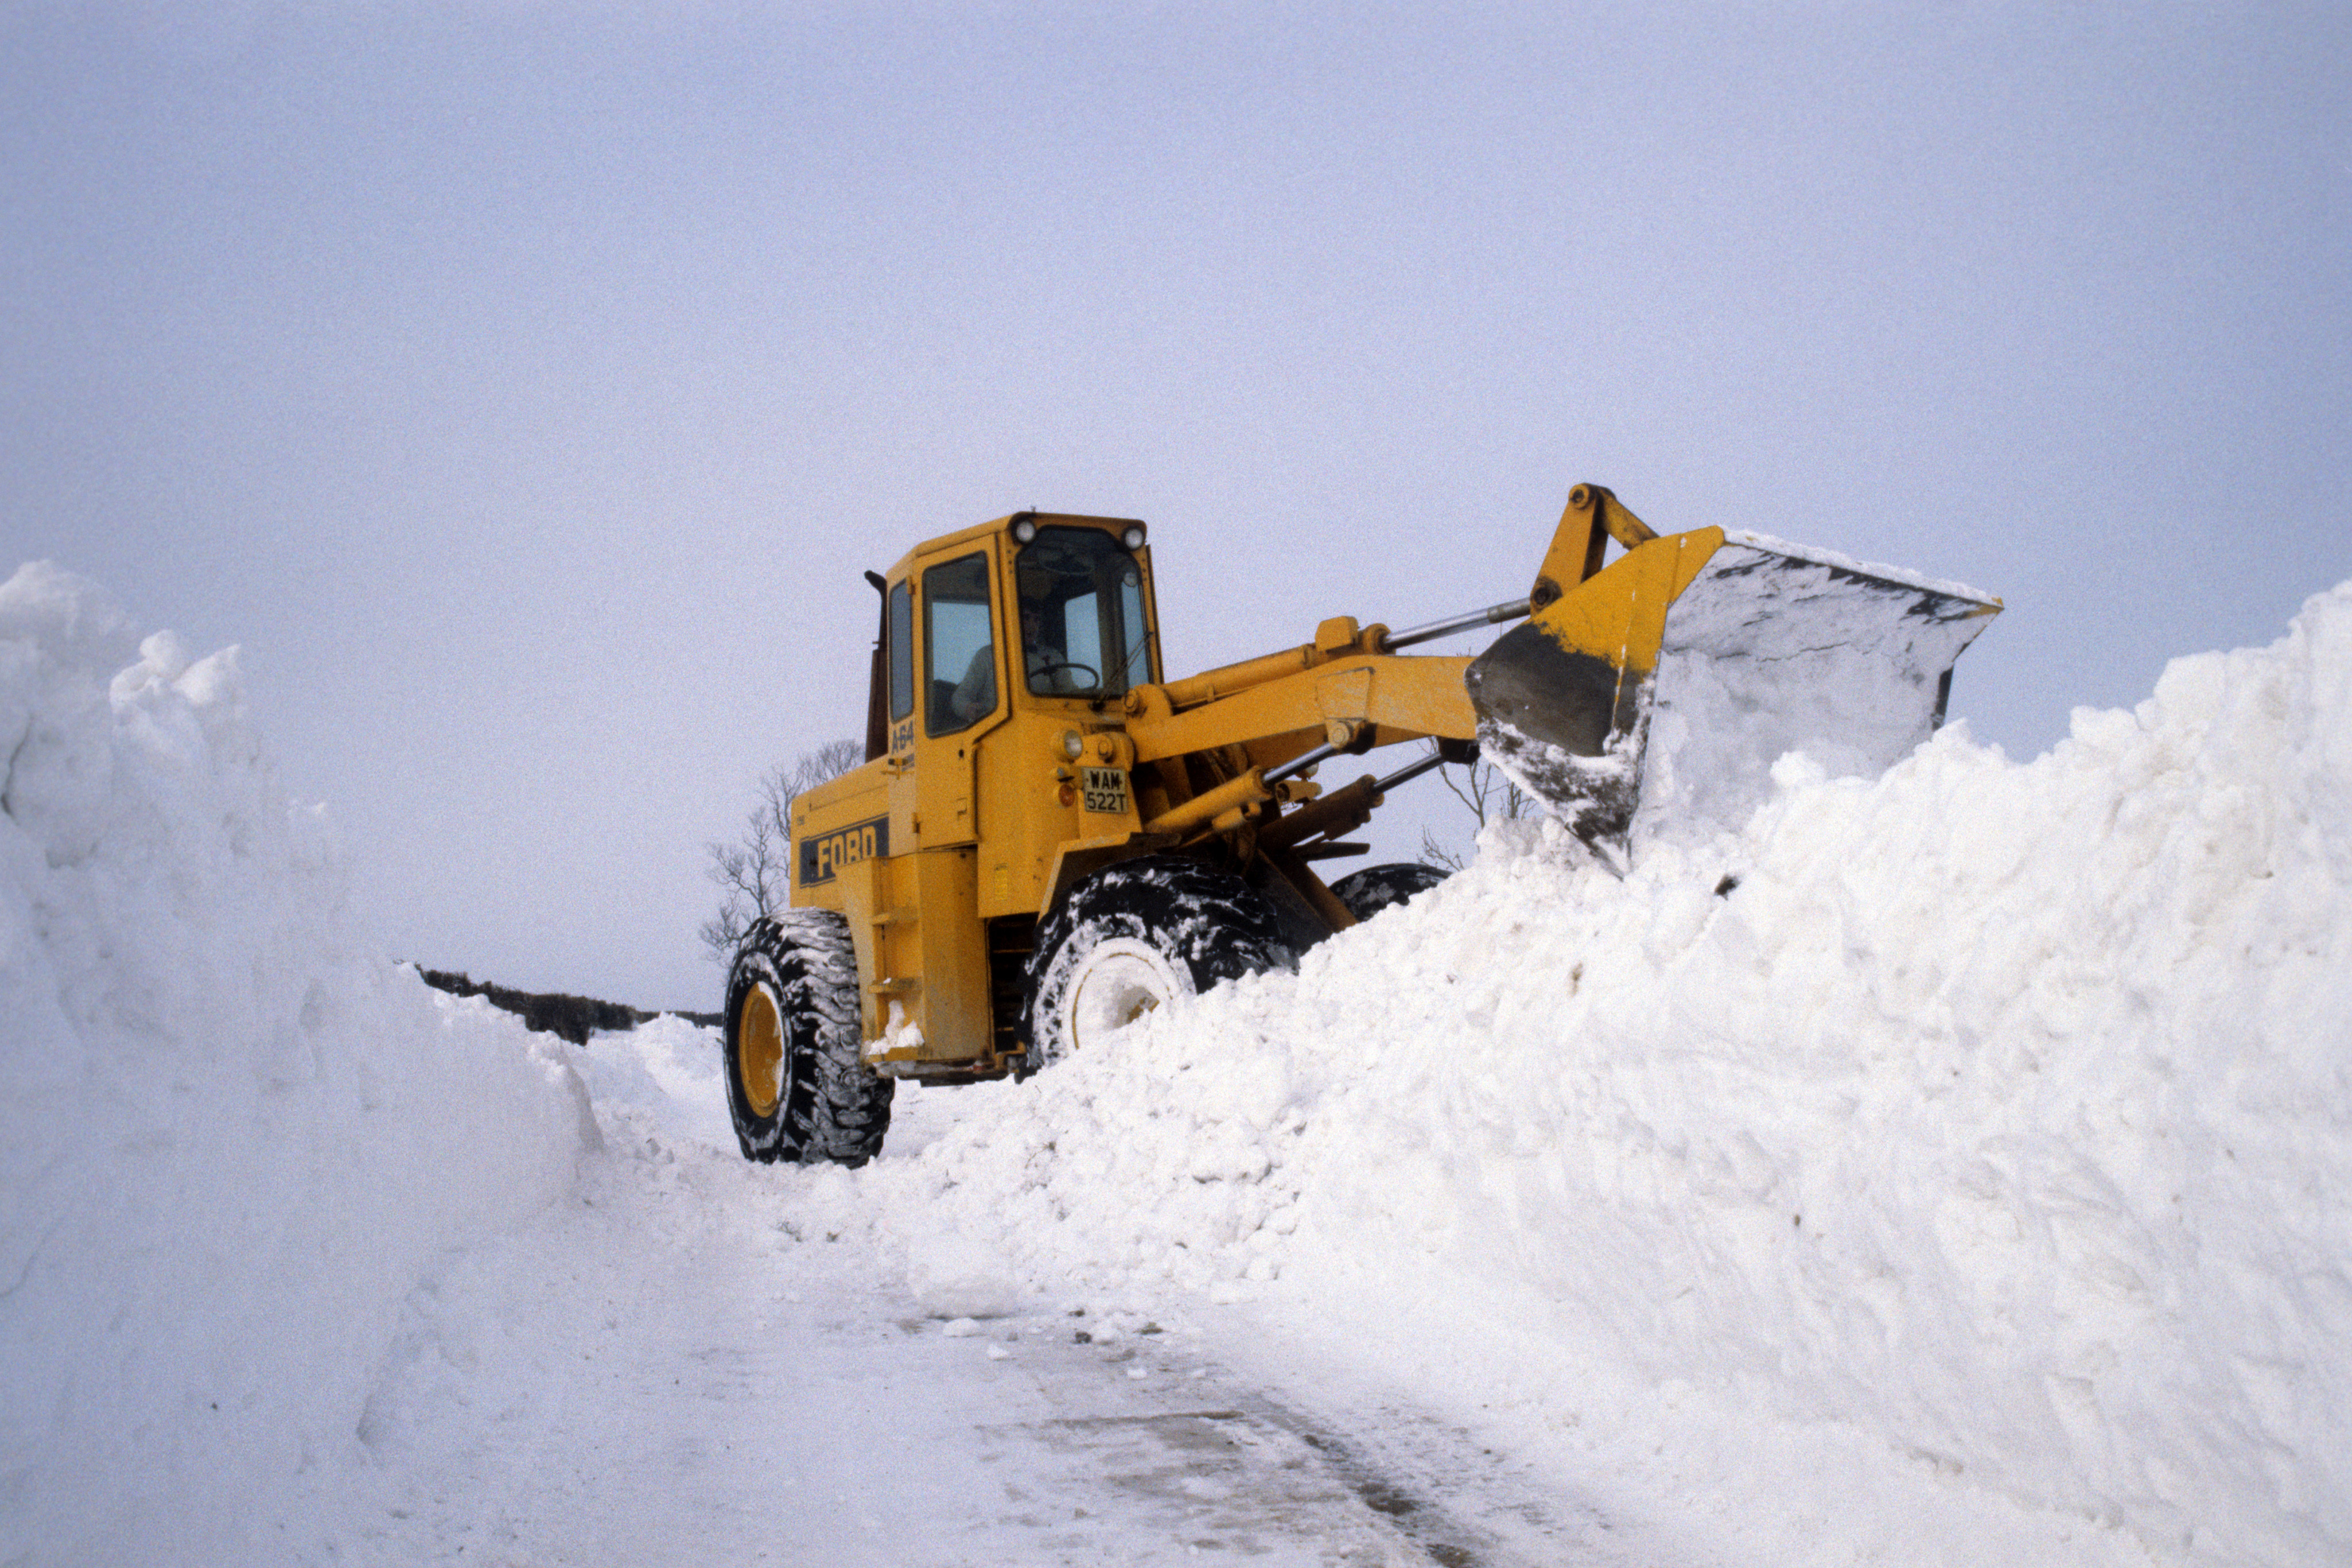 Much of the UK was covered in snow during the freezing winter of 1981/82